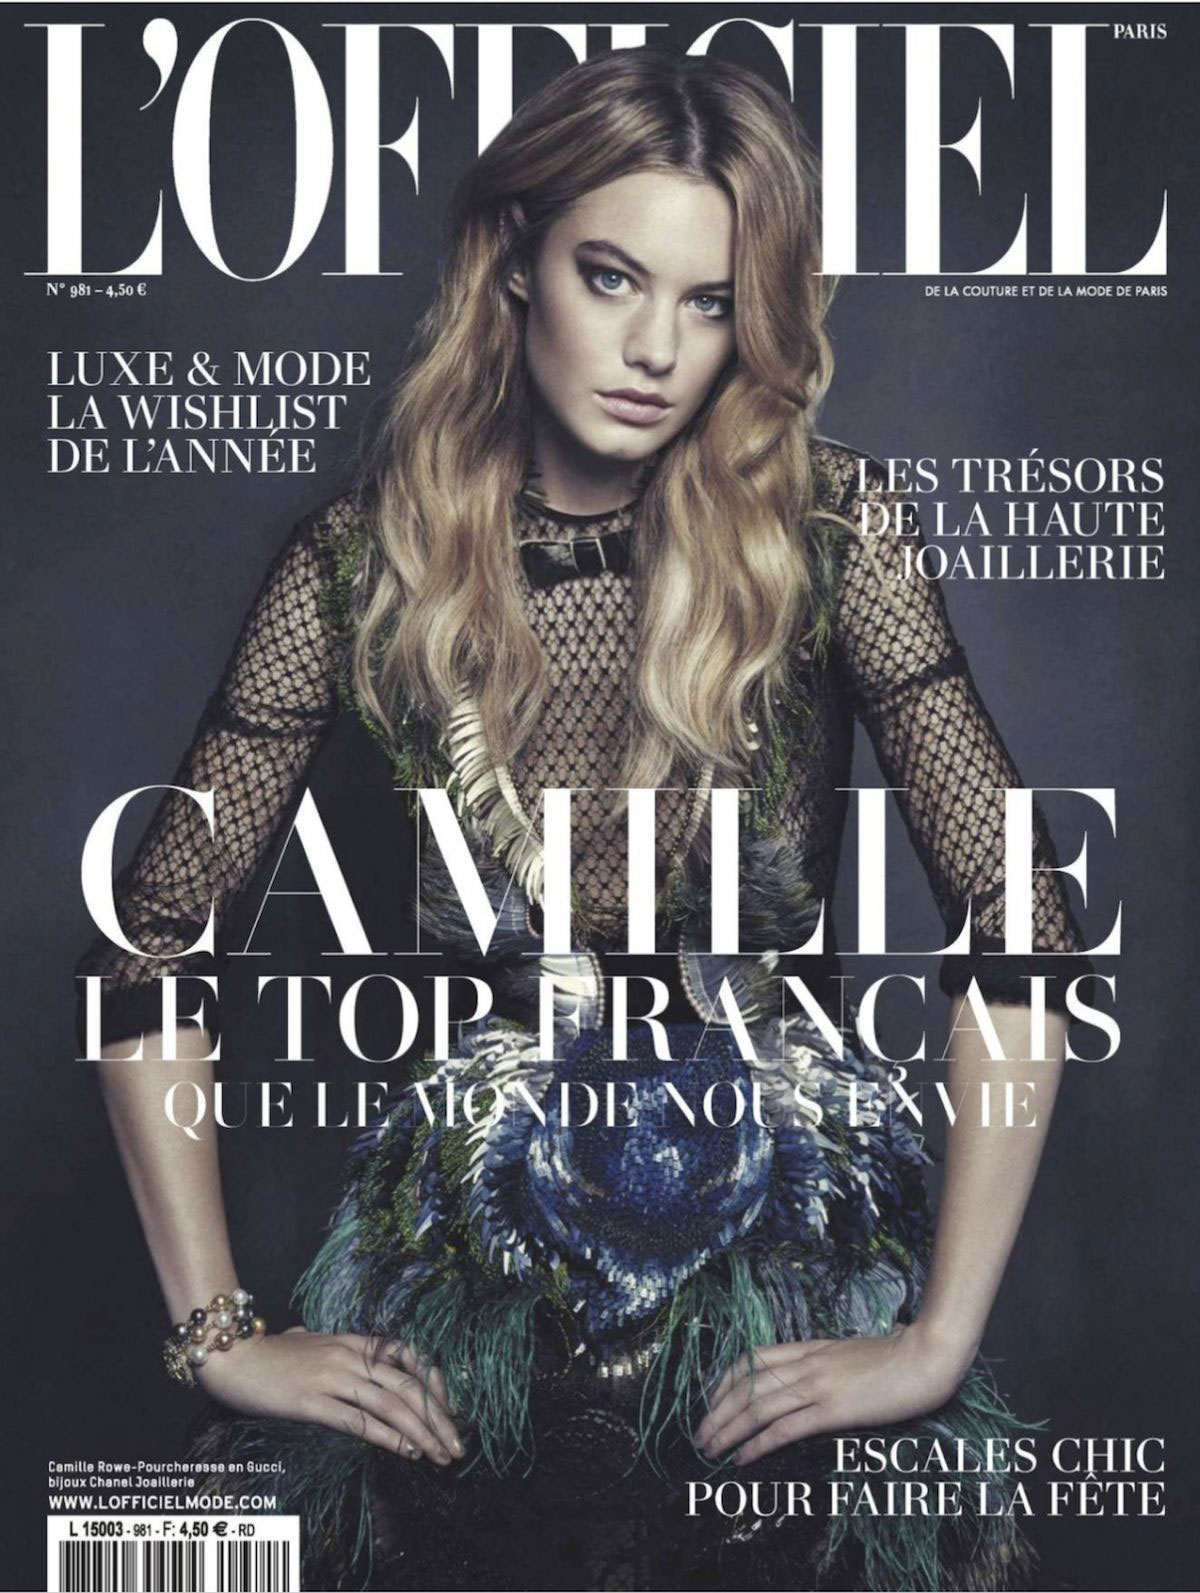 CAMILLE ROWE in L'Officiel Paris Magazine, January 2014 Issue